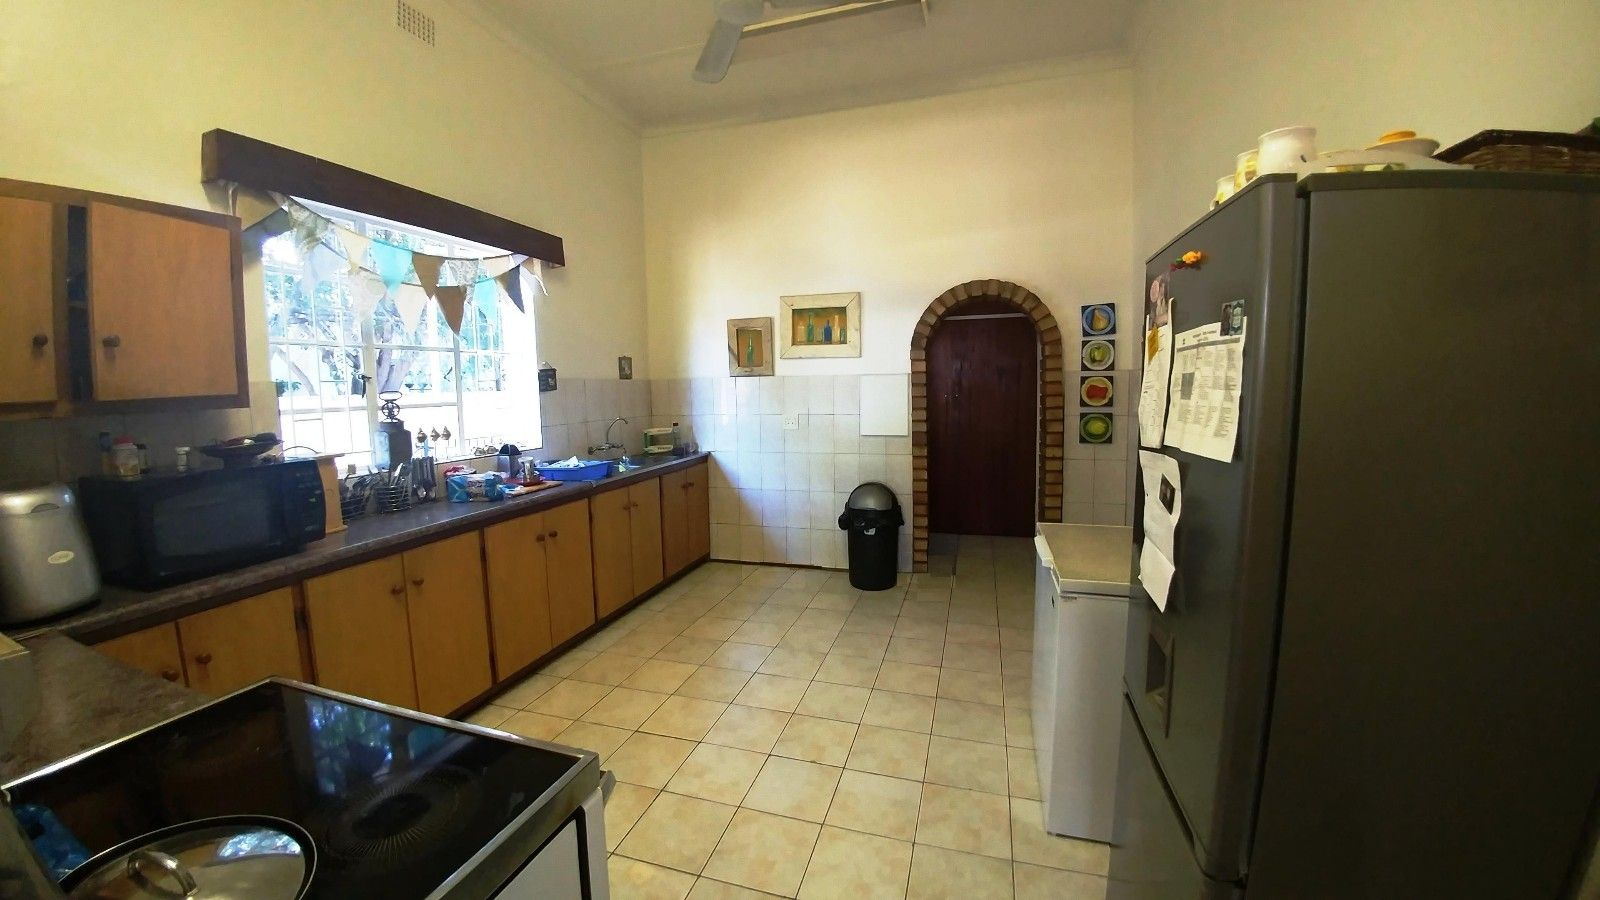 Potchefstroom Central for sale property. Ref No: 13460775. Picture no 8